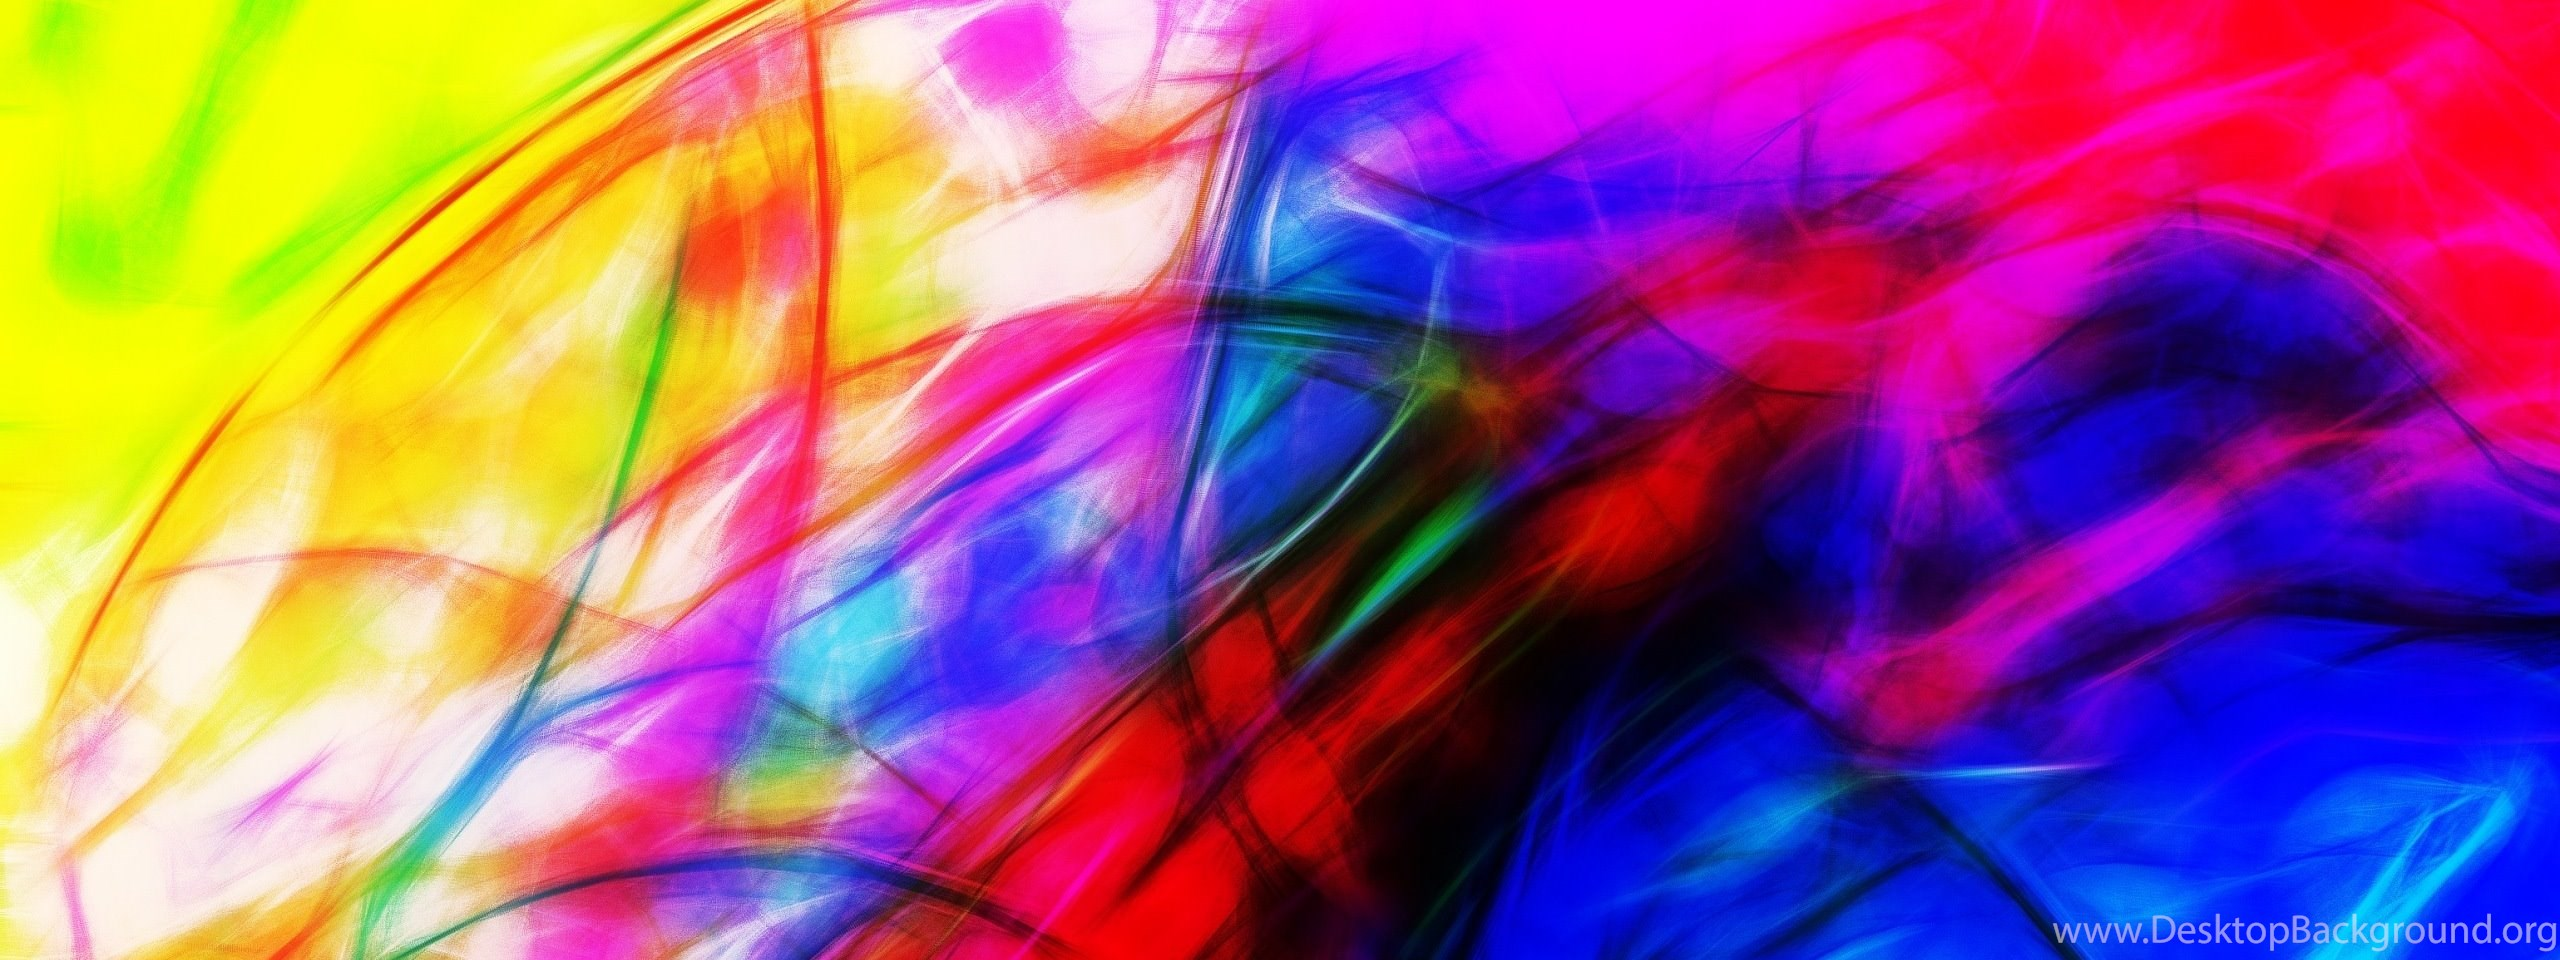 2560x1440 Wallpapers Abstract  WQHD 1440p (Wide Quad HD) 16:9